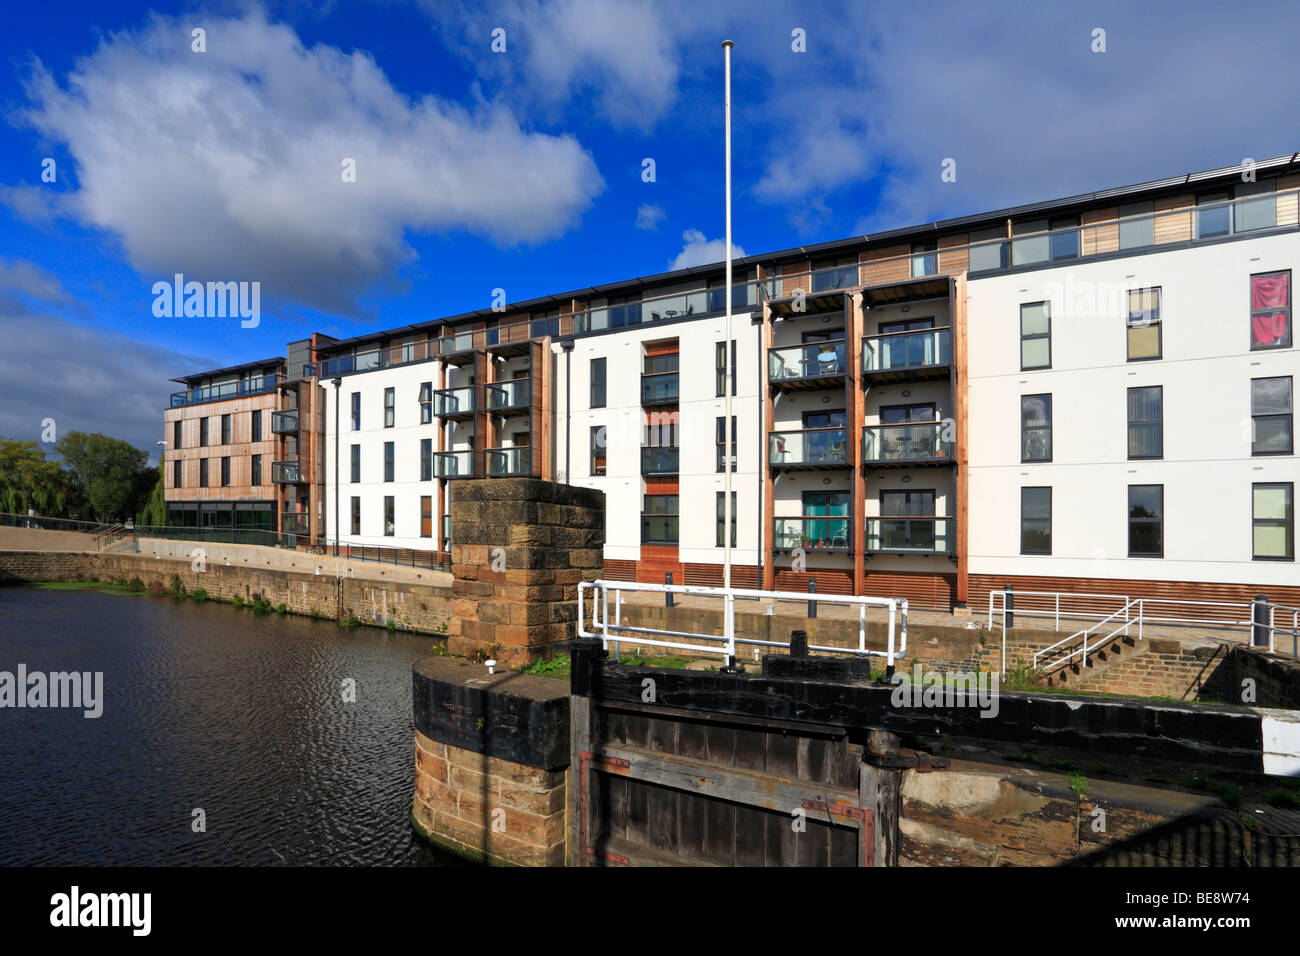 Wakefield Waterfront Development, Calder and Hebble Navigation, West Yorkshire, England, UK. Stock Photo